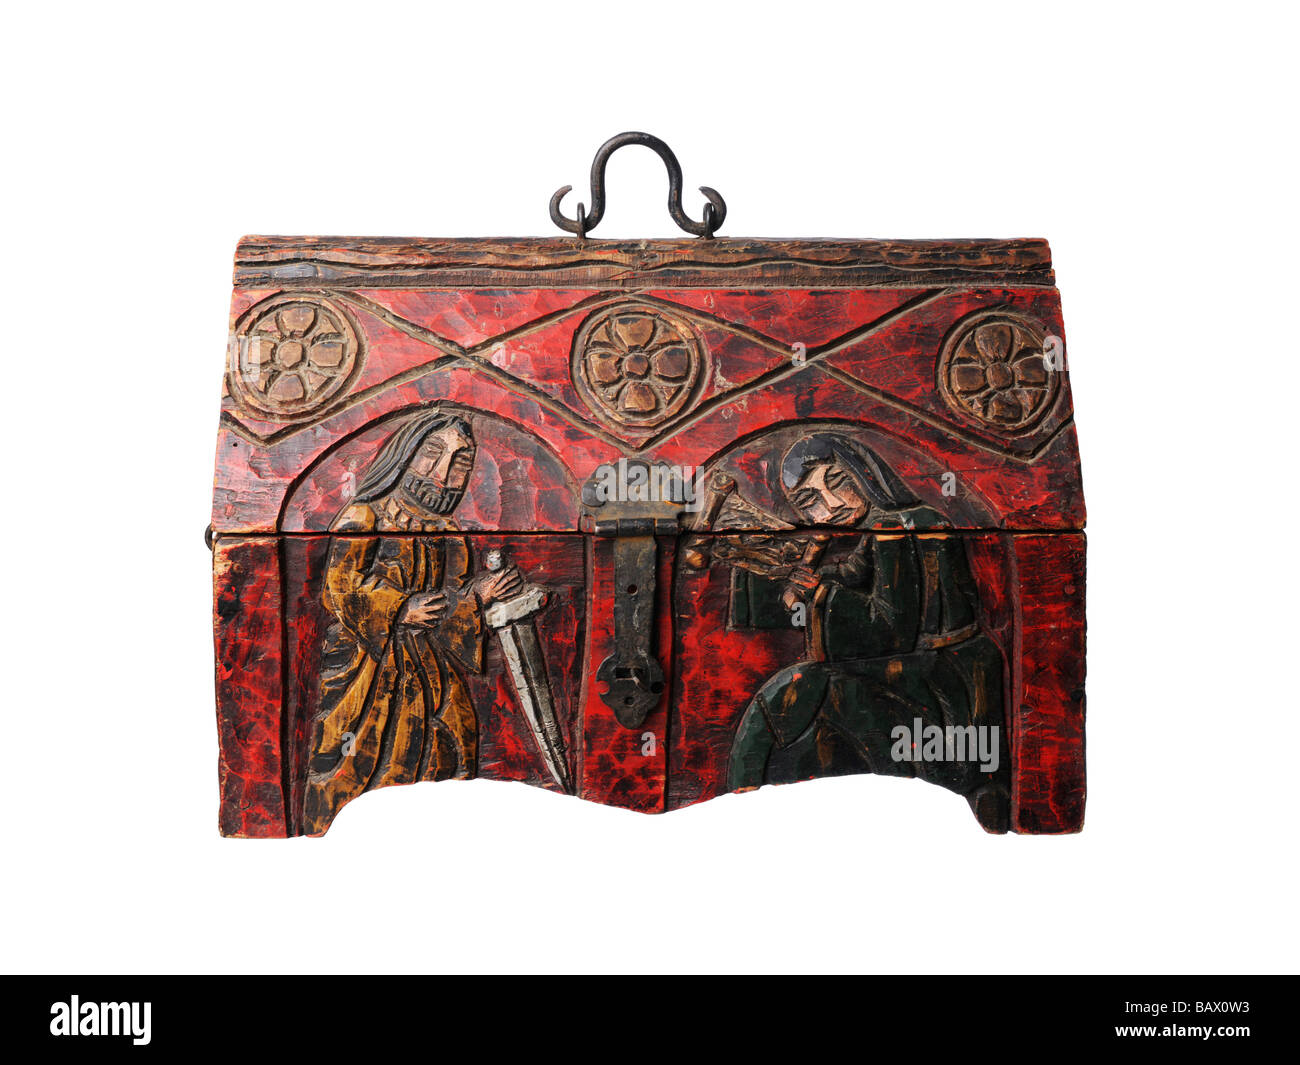 Vintage wooden holy treasure chest - Stock Image